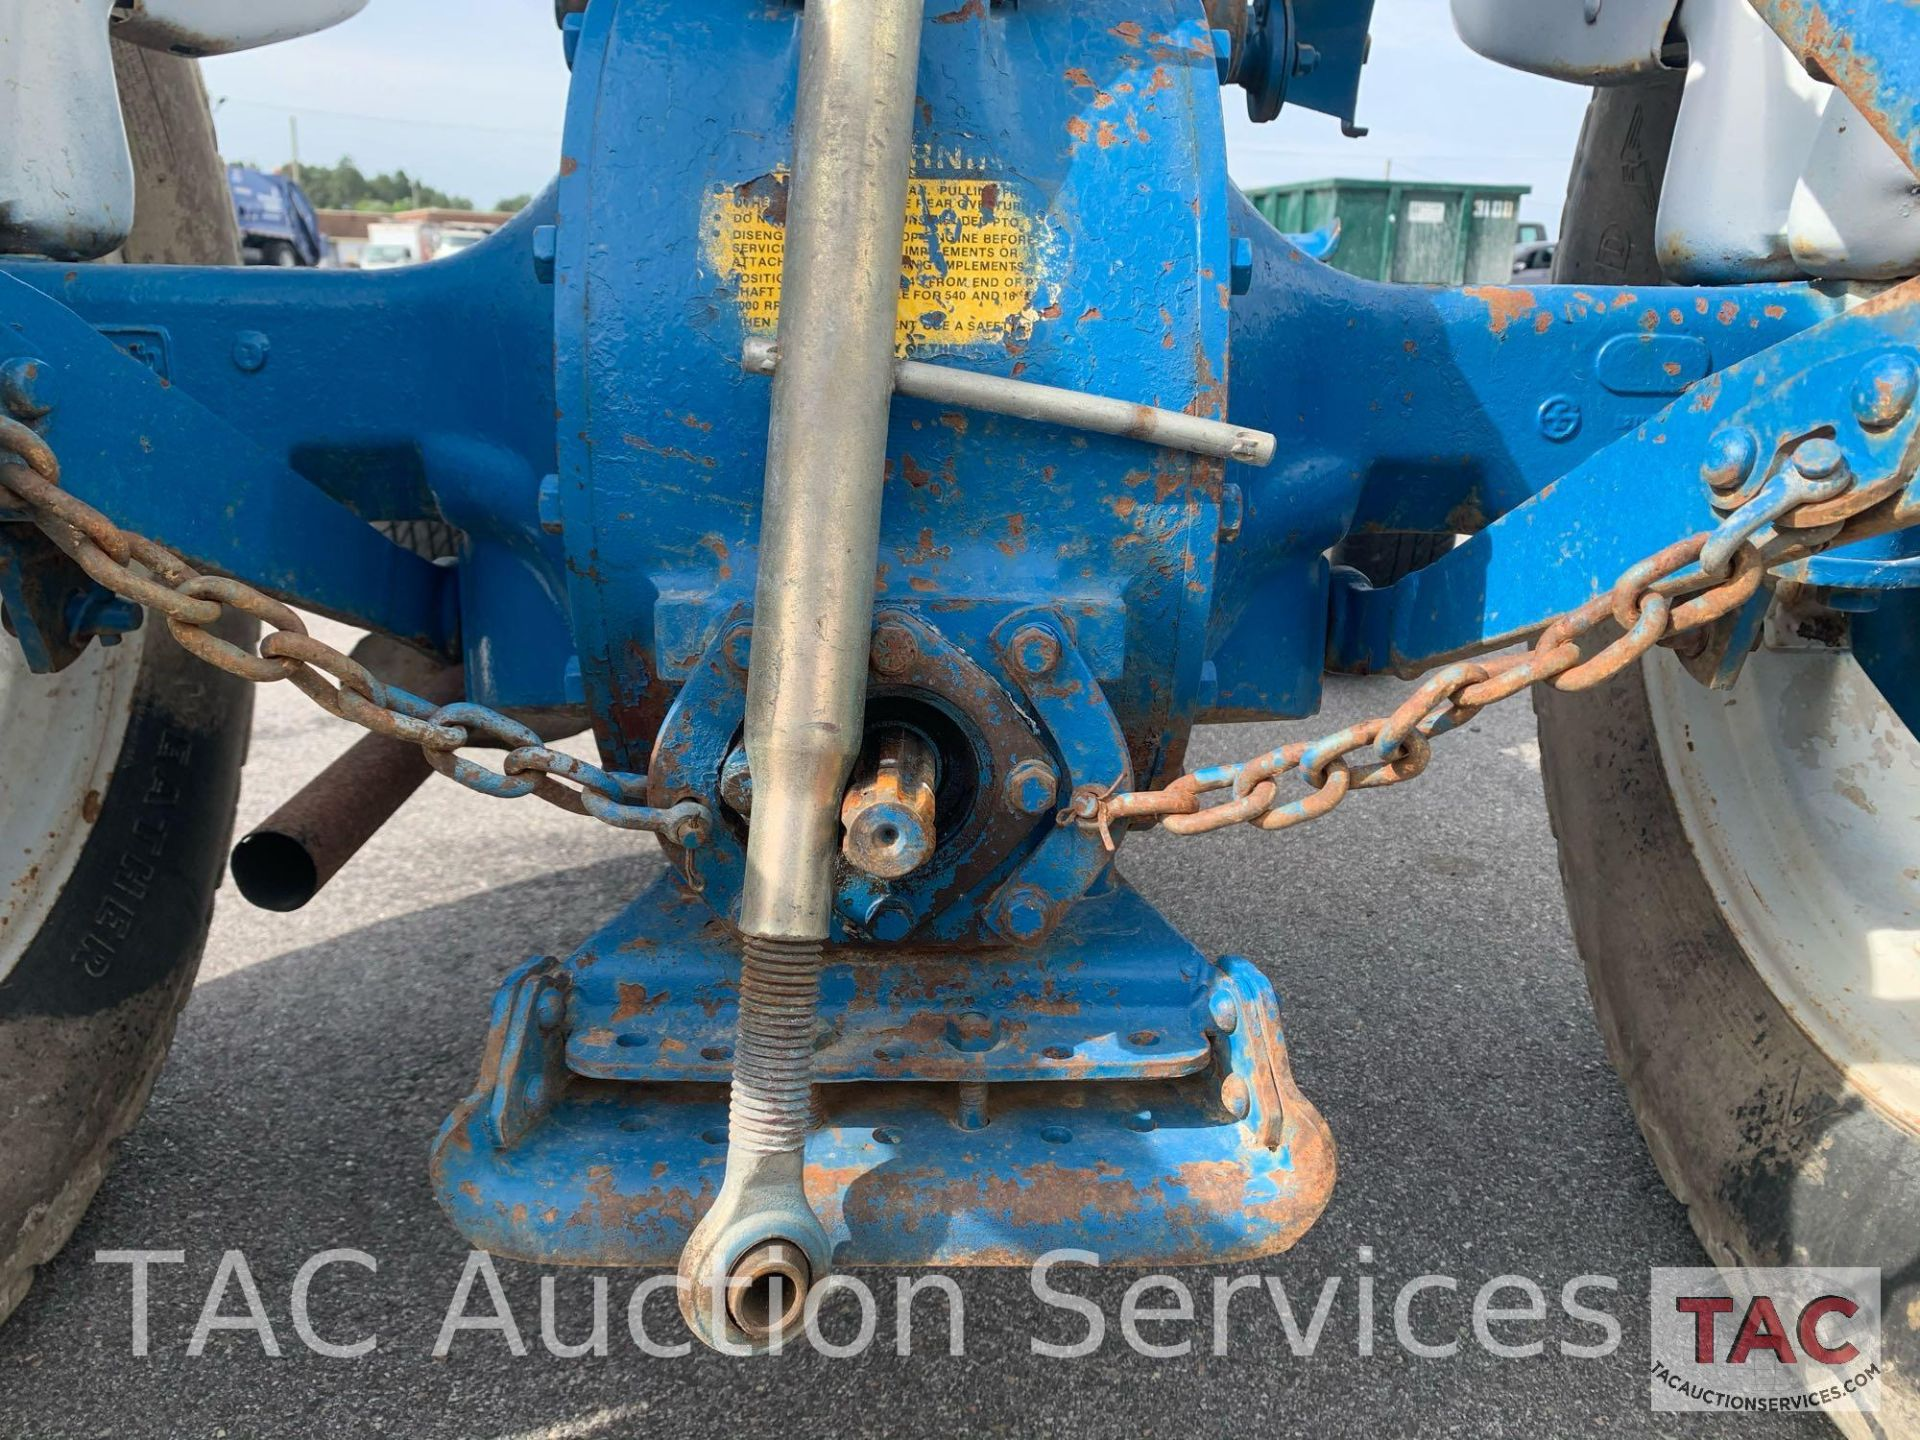 Ford 2000 Farm Tractor - Image 21 of 28